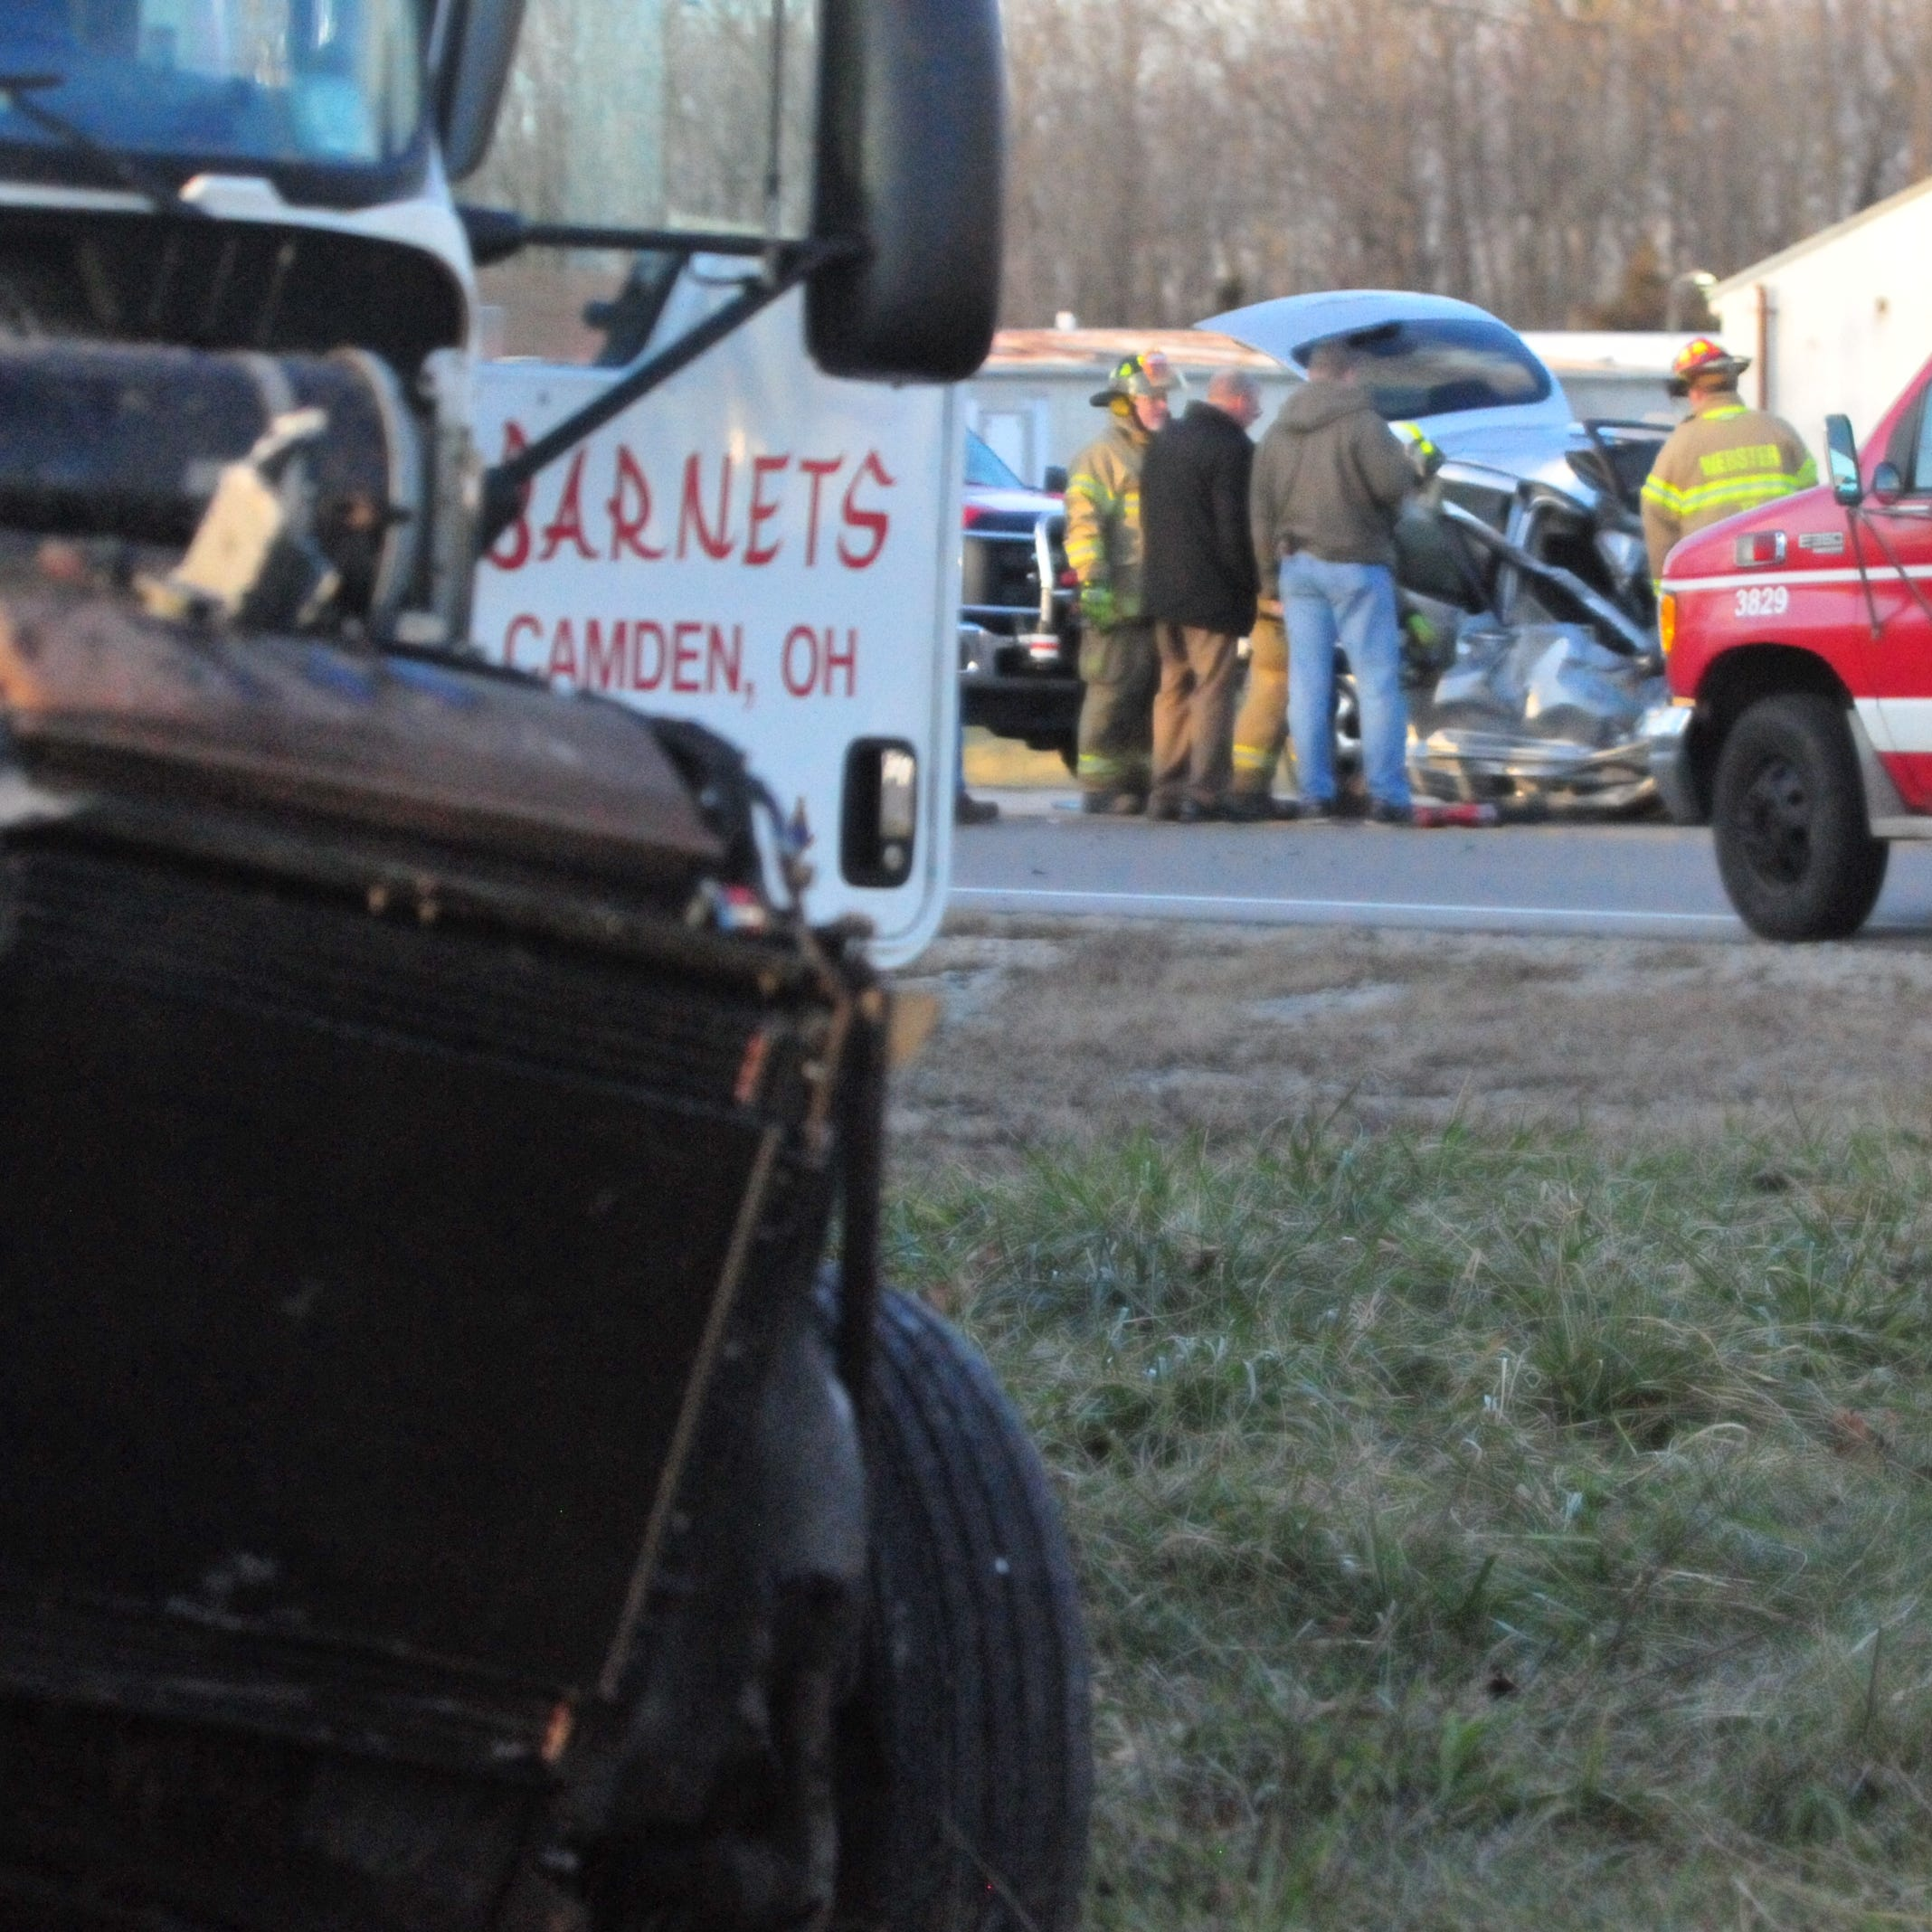 Driver extricated, taken to hospital after turning car struck by semi on U.S. 35